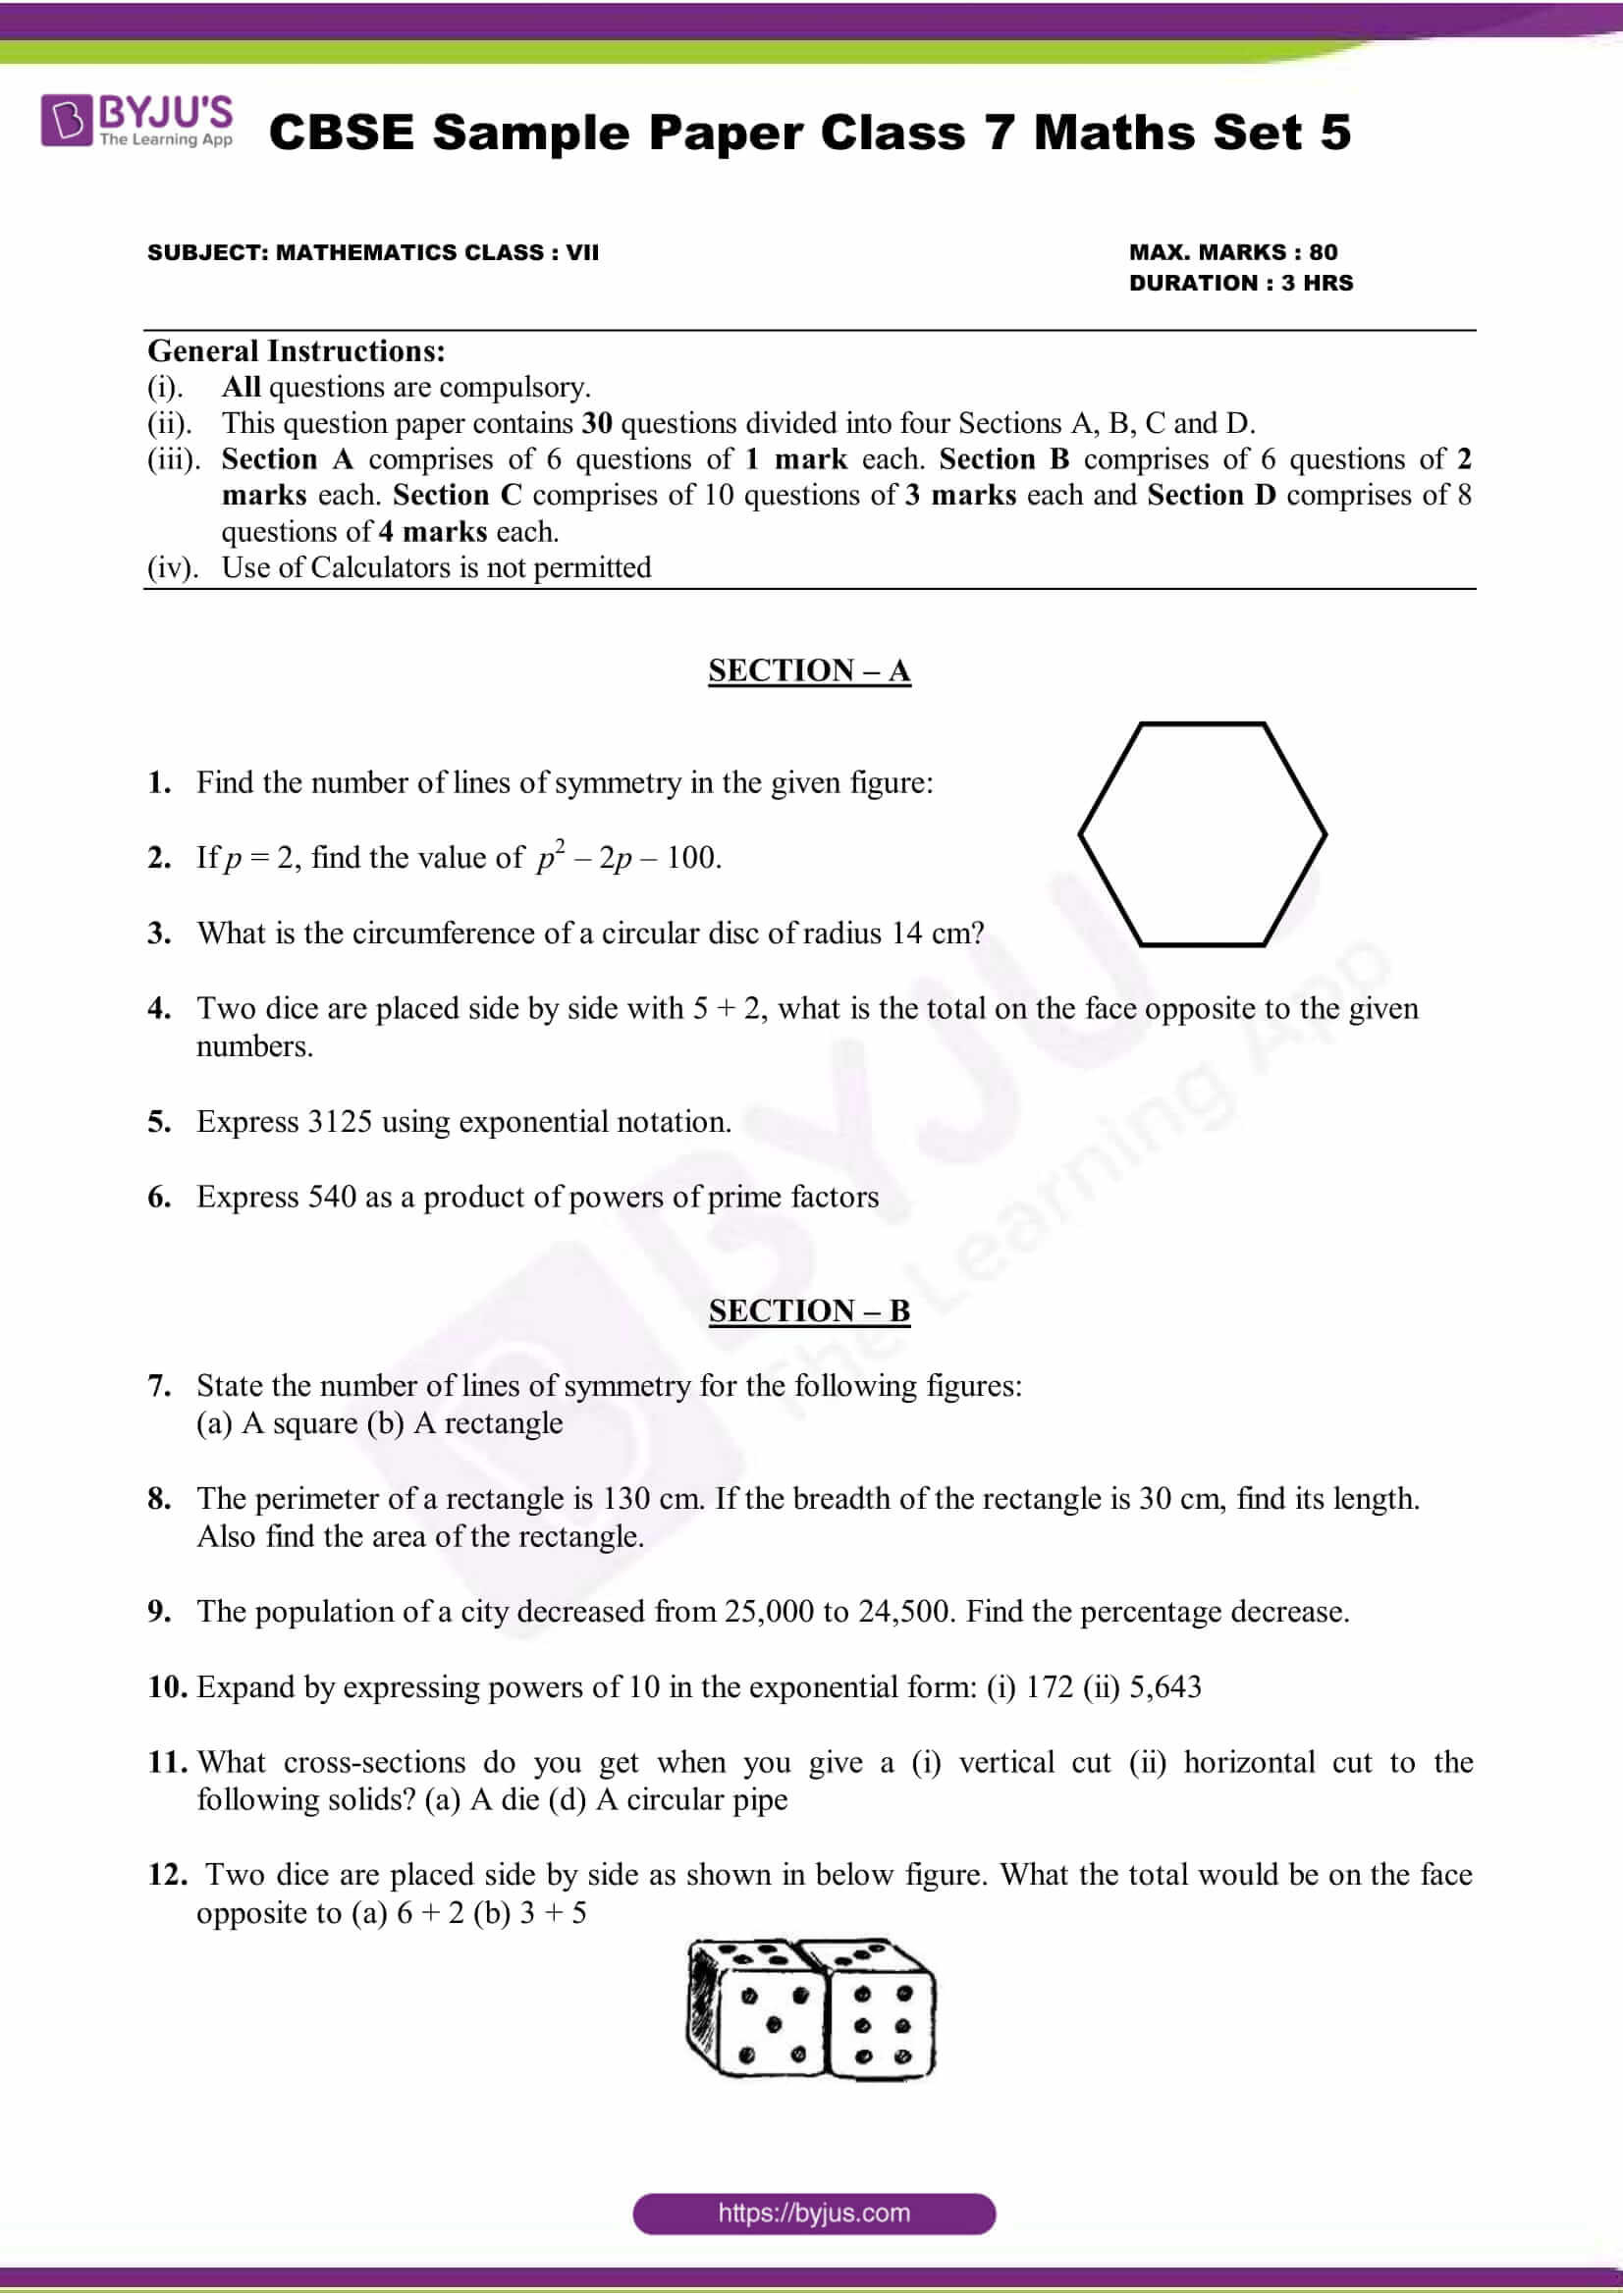 Cross Sections Worksheet 7th Grade Cbse Maths Sample Paper Set Pdf 7th Grade Worksheets Basic